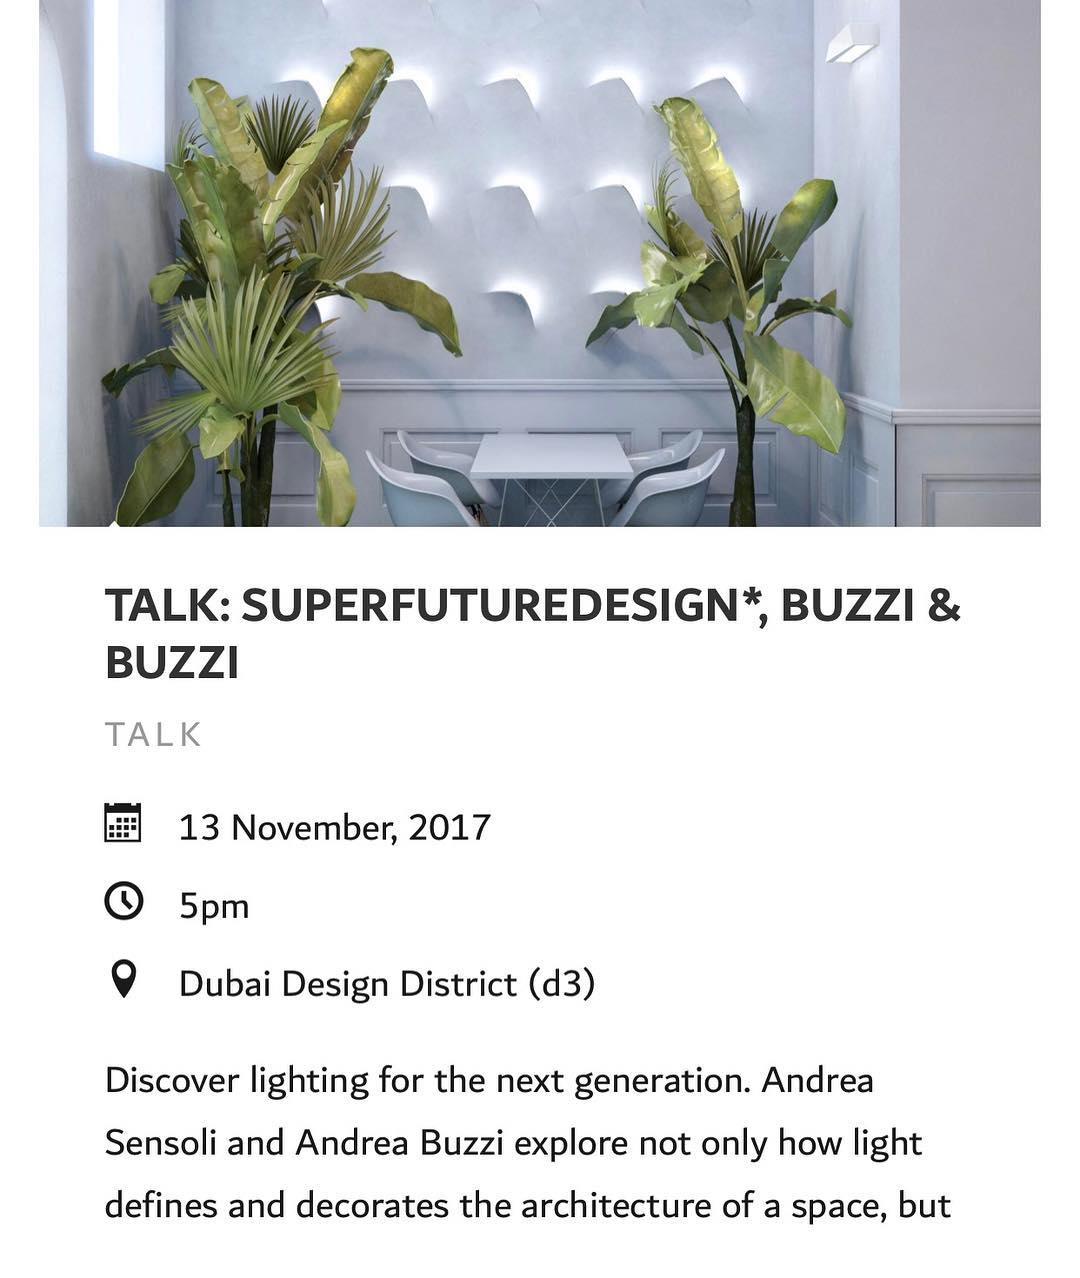 Today is the day!!! ✨ At 5 pm Andrea Sensoli and Andrea Buzzi will talk about discovering lighting for the next generation. And join us from 6pm for the aperitivo at BETTair-HOUSE. @buzziebuzzi @dubaidesignweek . . . .  #dxbdw2017 #iamd3 #talk #installation #dubaidesigndays2017 #pavillions #lightingdesign #ecosustainable #thisisd3 #environmentallyfriendly #mydubai #italiandesign #d3community